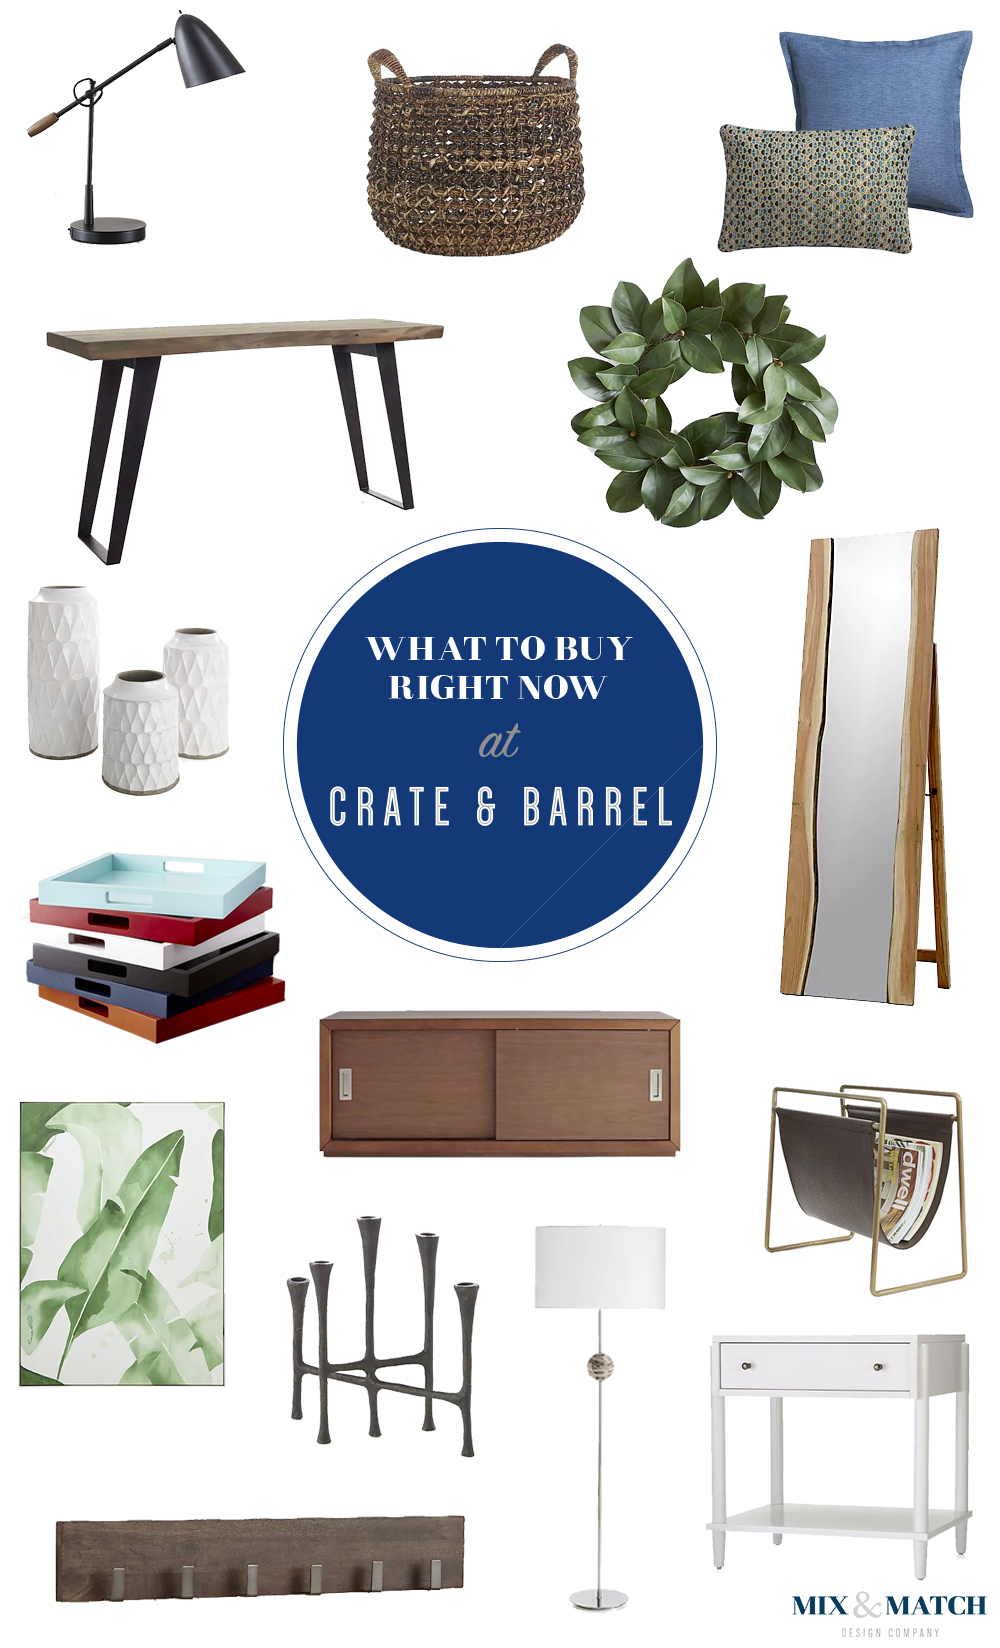 A designer's picks for what to shop for right now at Crate & Barrel! // Crate & Barrel furniture, Crate & Barrel home decor, Crate & Barrel inspiration